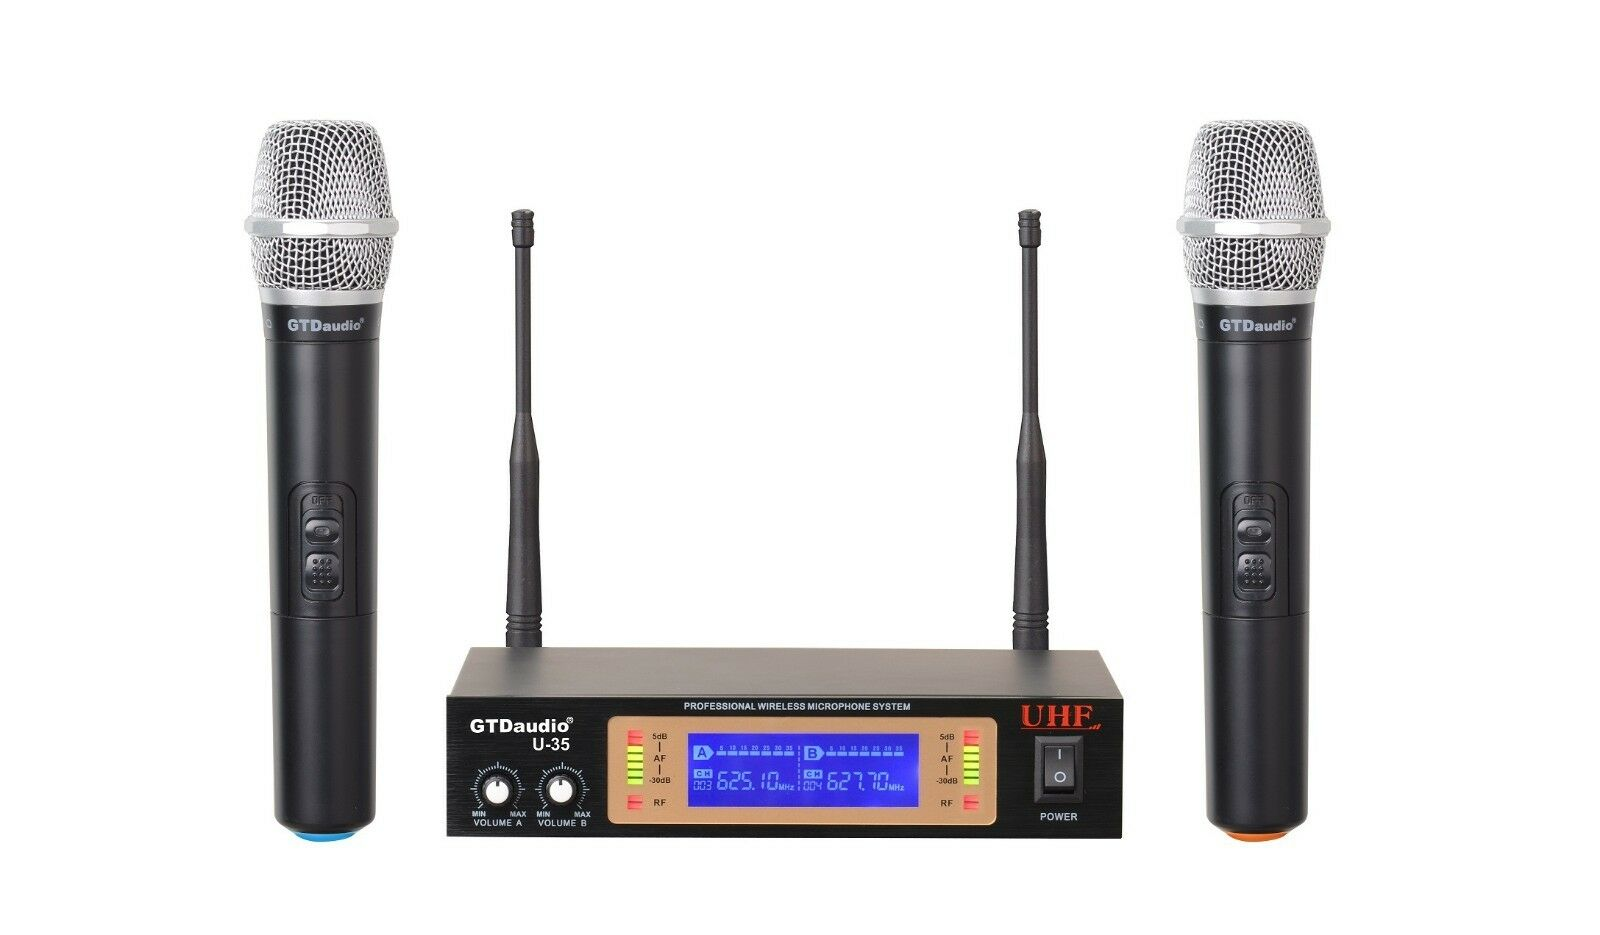 gtd audio 2ch uhf handheld wireless microphone mic system new 35h. Black Bedroom Furniture Sets. Home Design Ideas